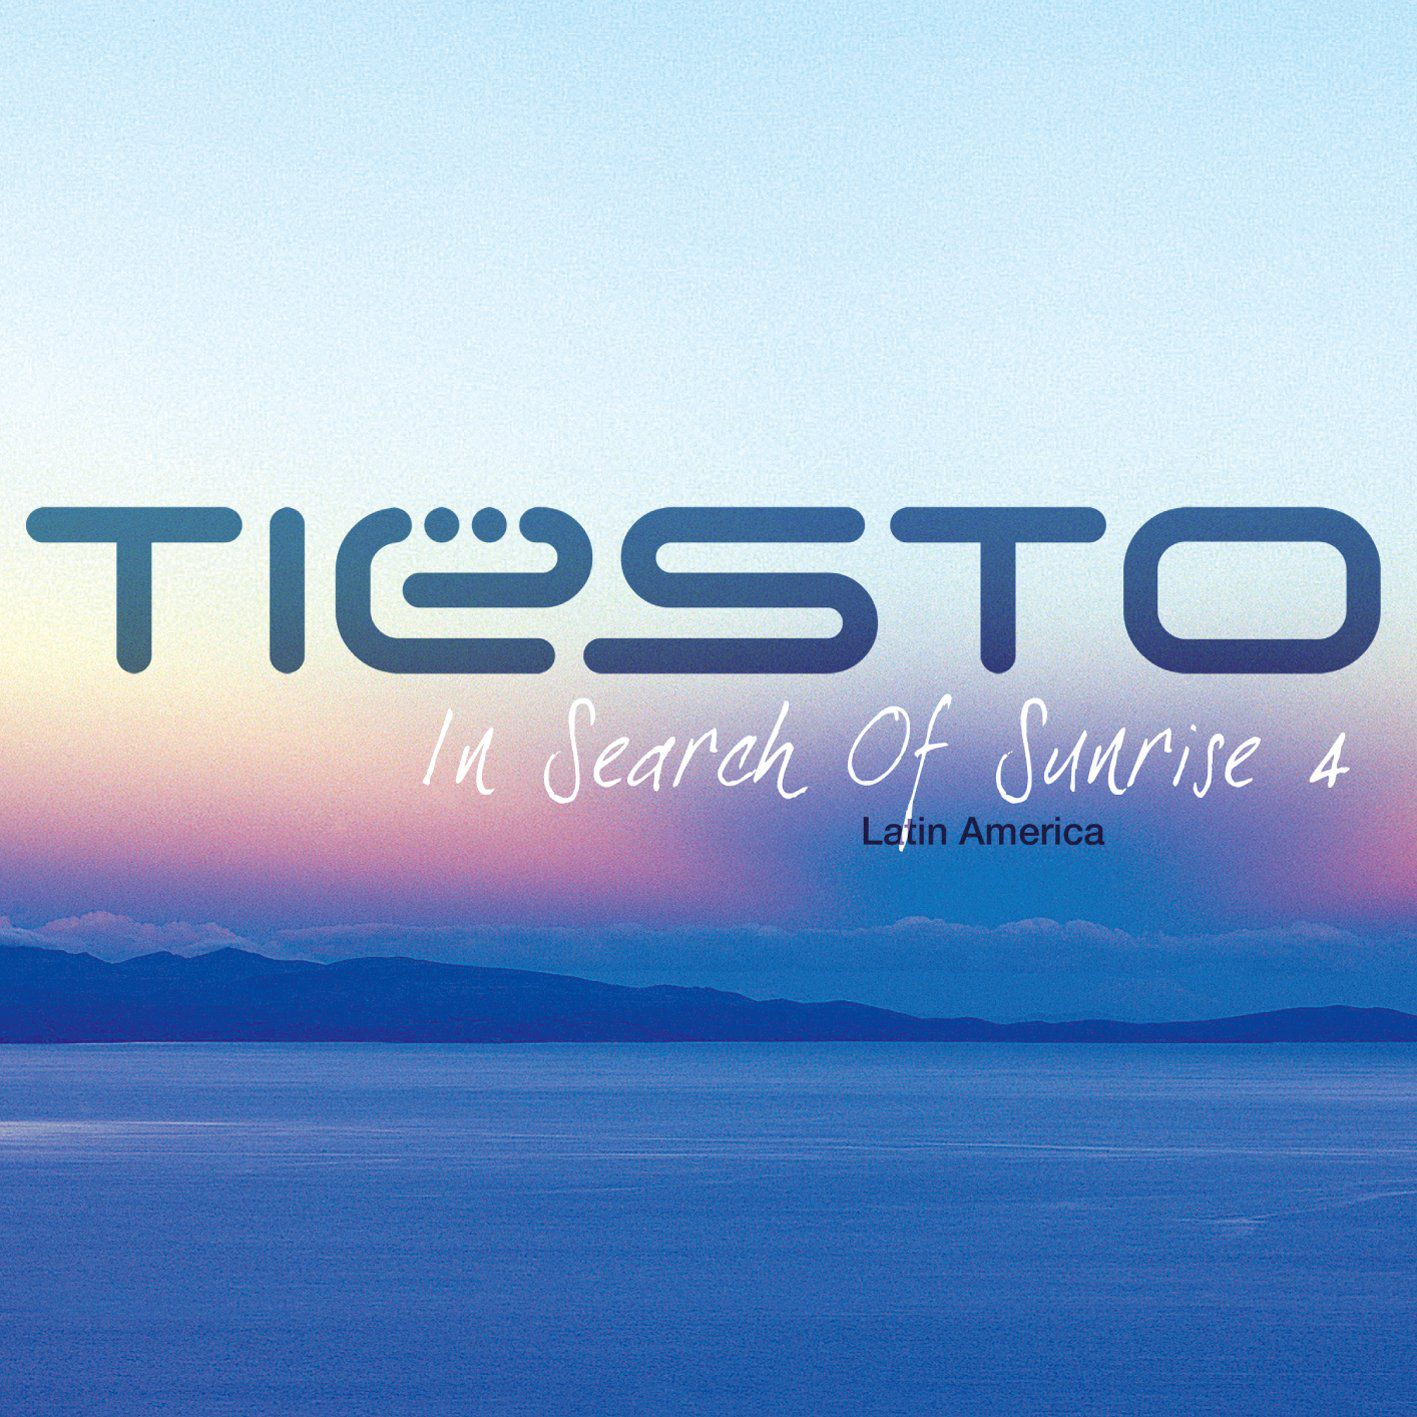 Tiësto compilation: In Search of Sunrise 4 mix, tracklist, album, track, sigle, remix, isos 4